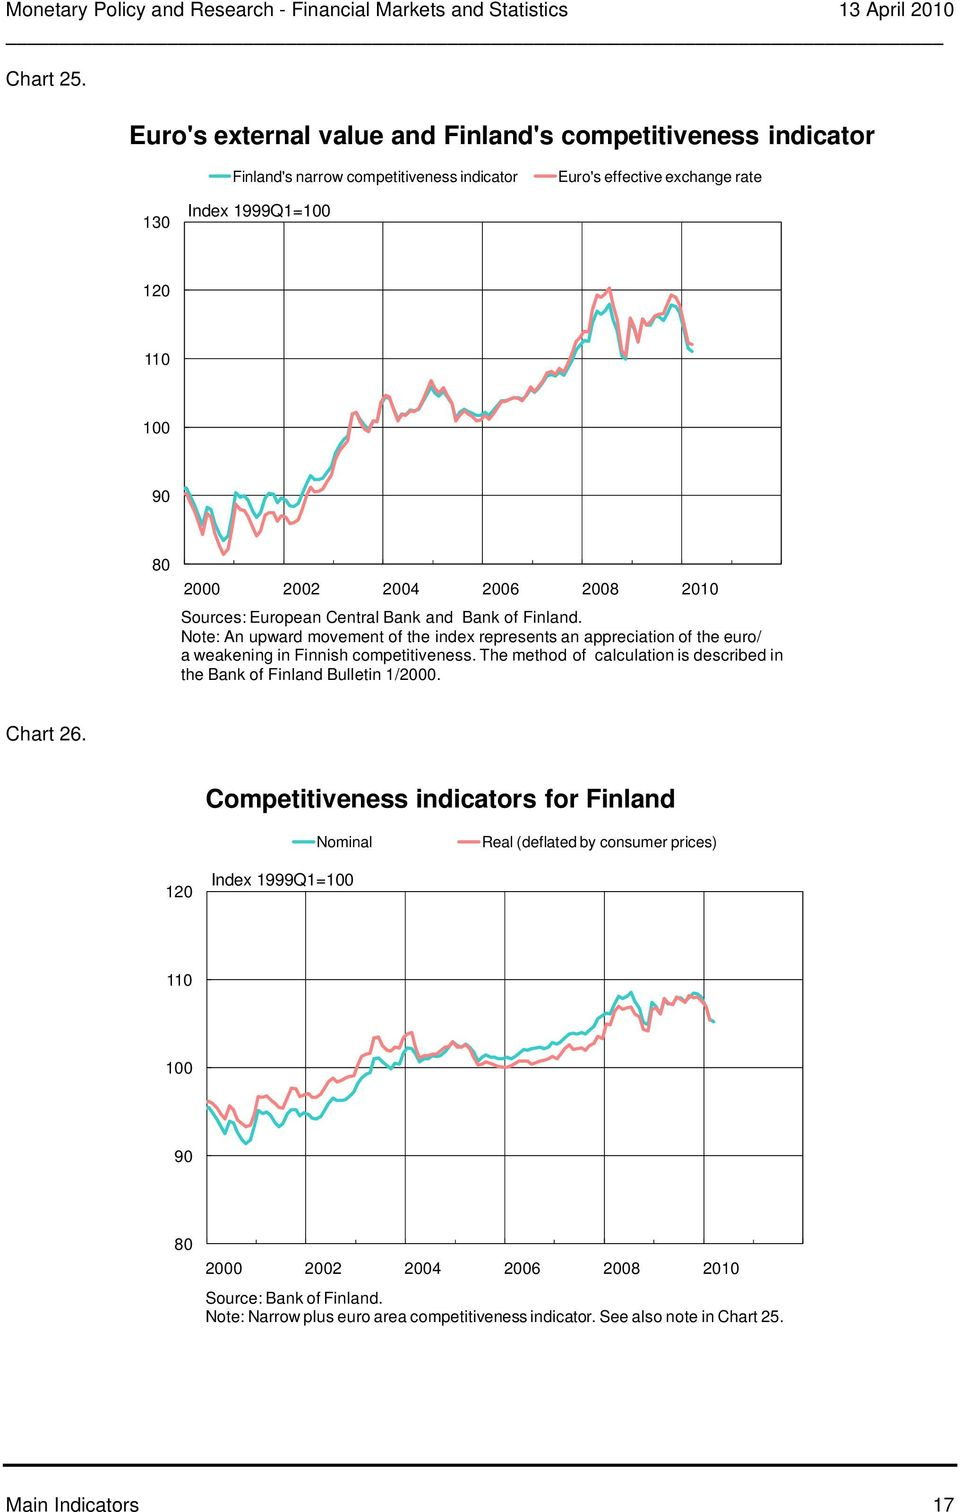 Central Bank and Bank of Finland. Note: An upward movement of the index represents an appreciation of the euro/ a weakening in Finnish competitiveness.